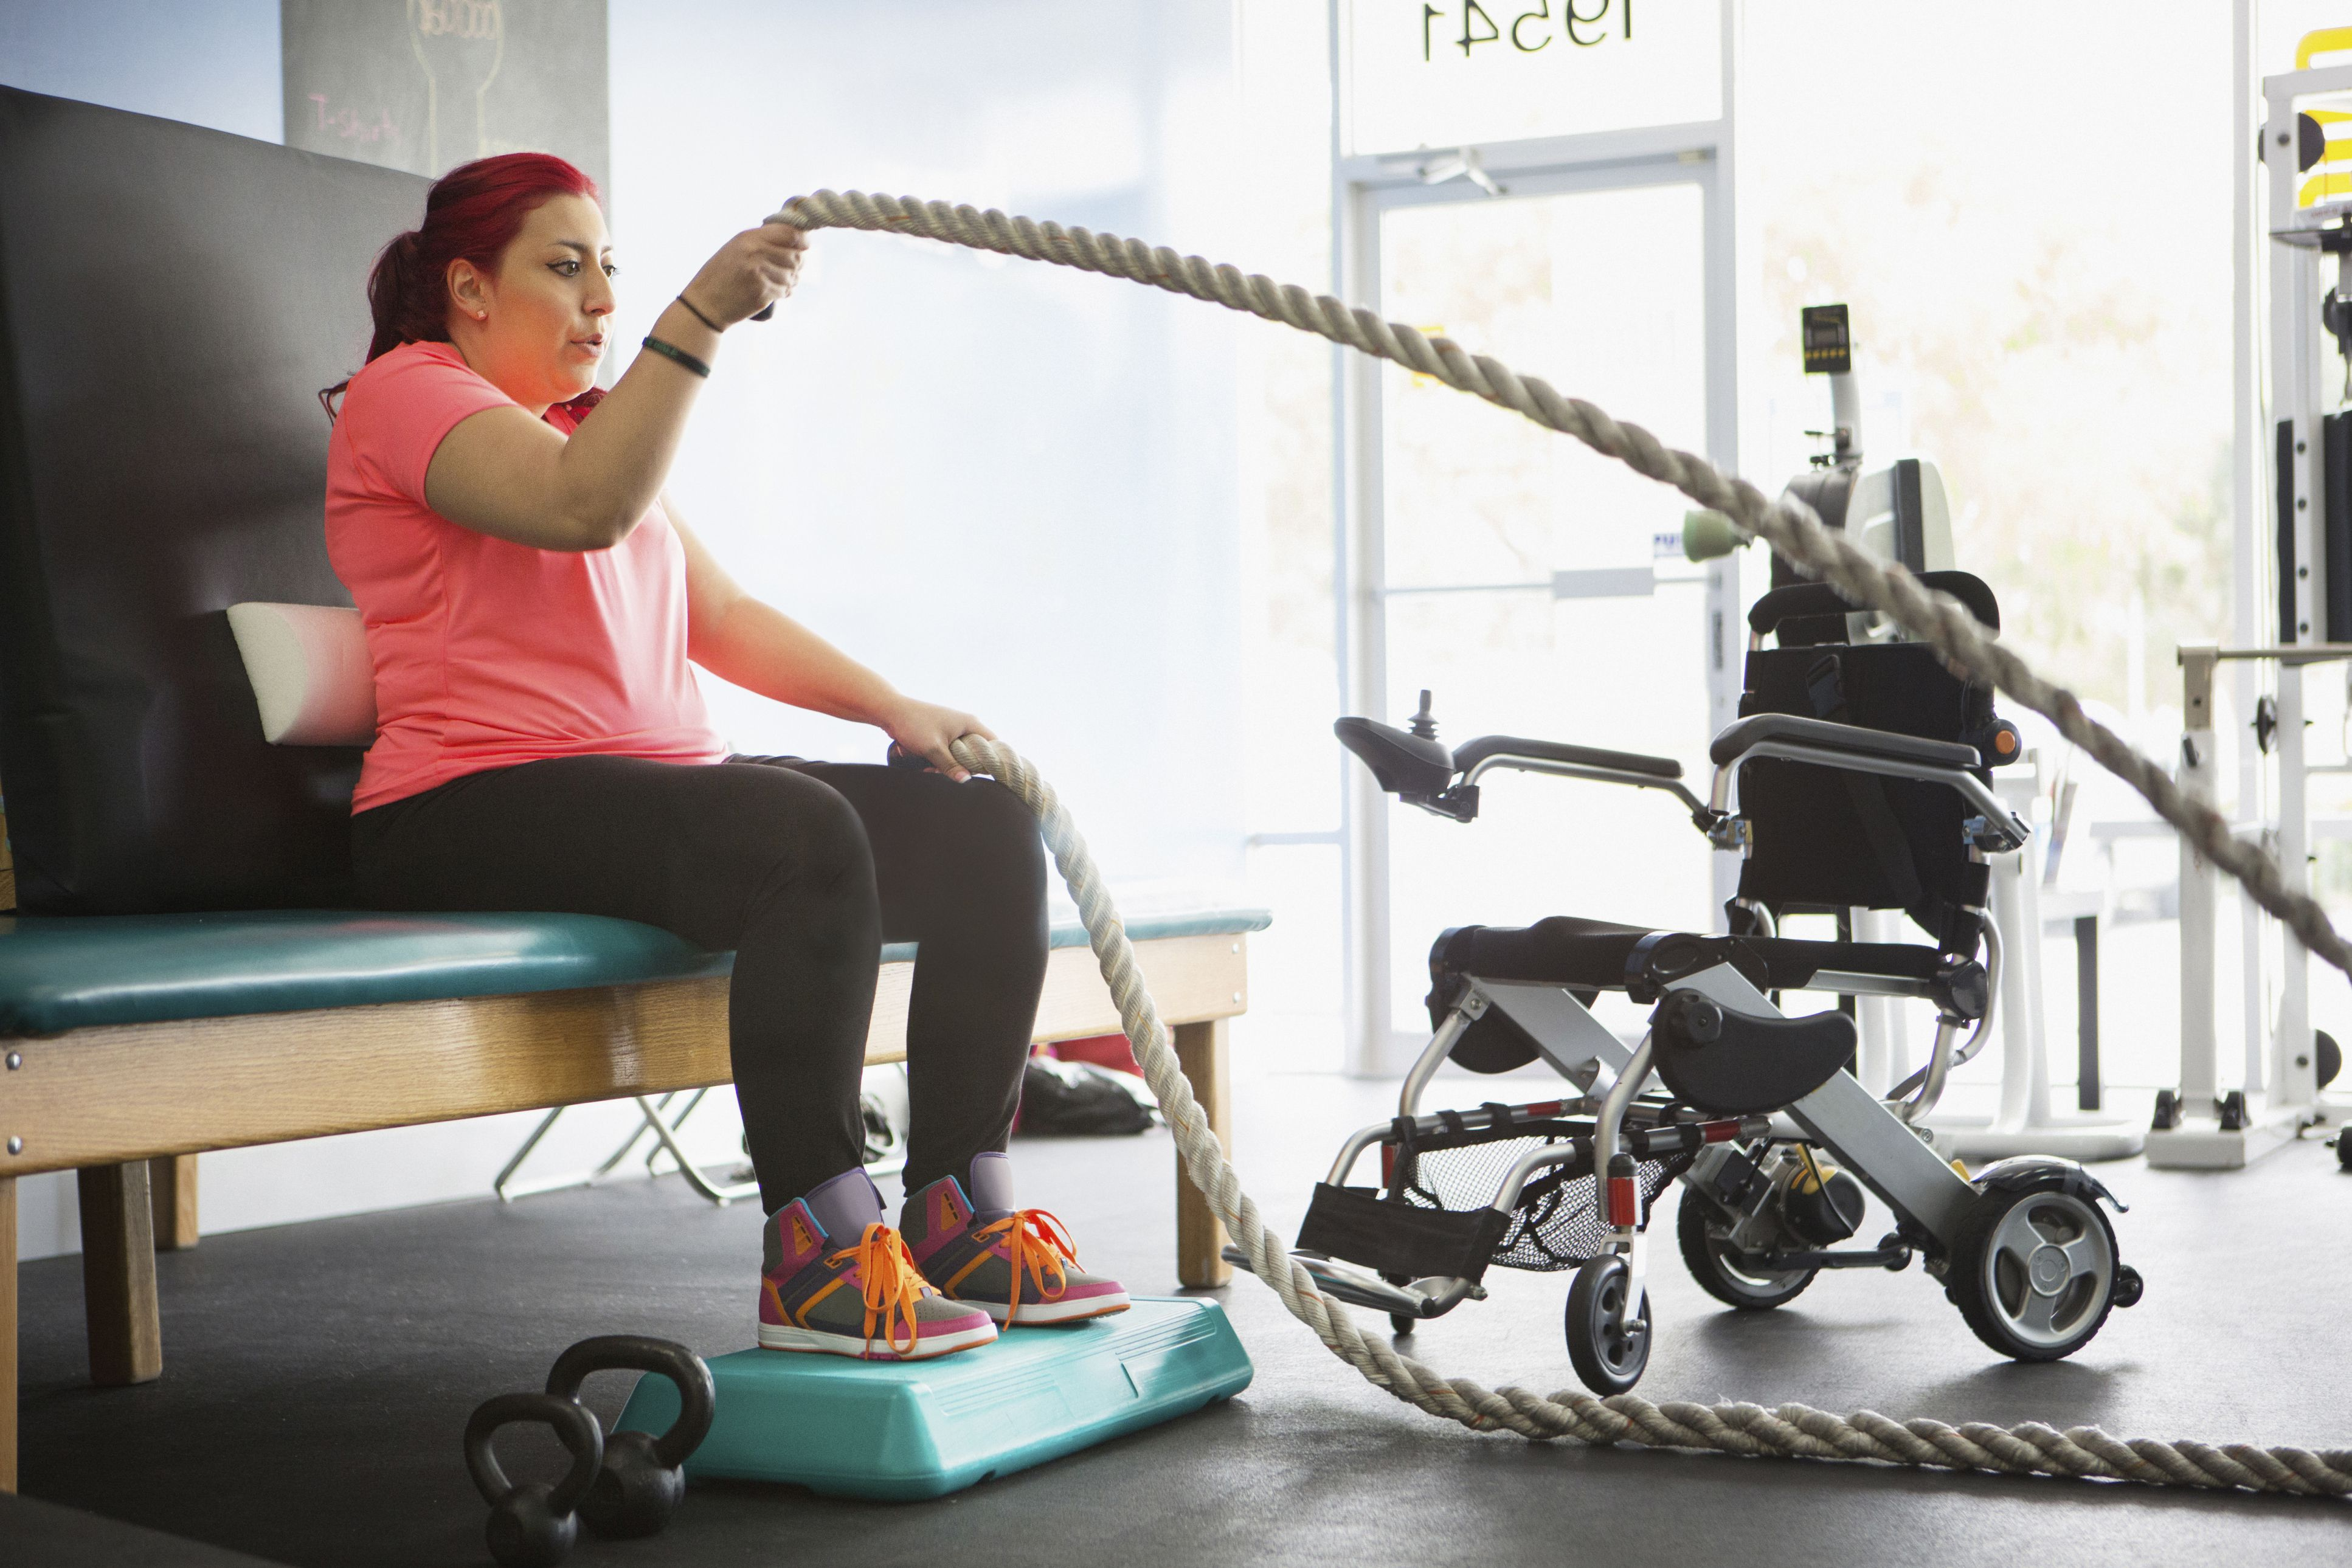 Chair Exercises For Obese No Limits Exercising In A Wheelchair